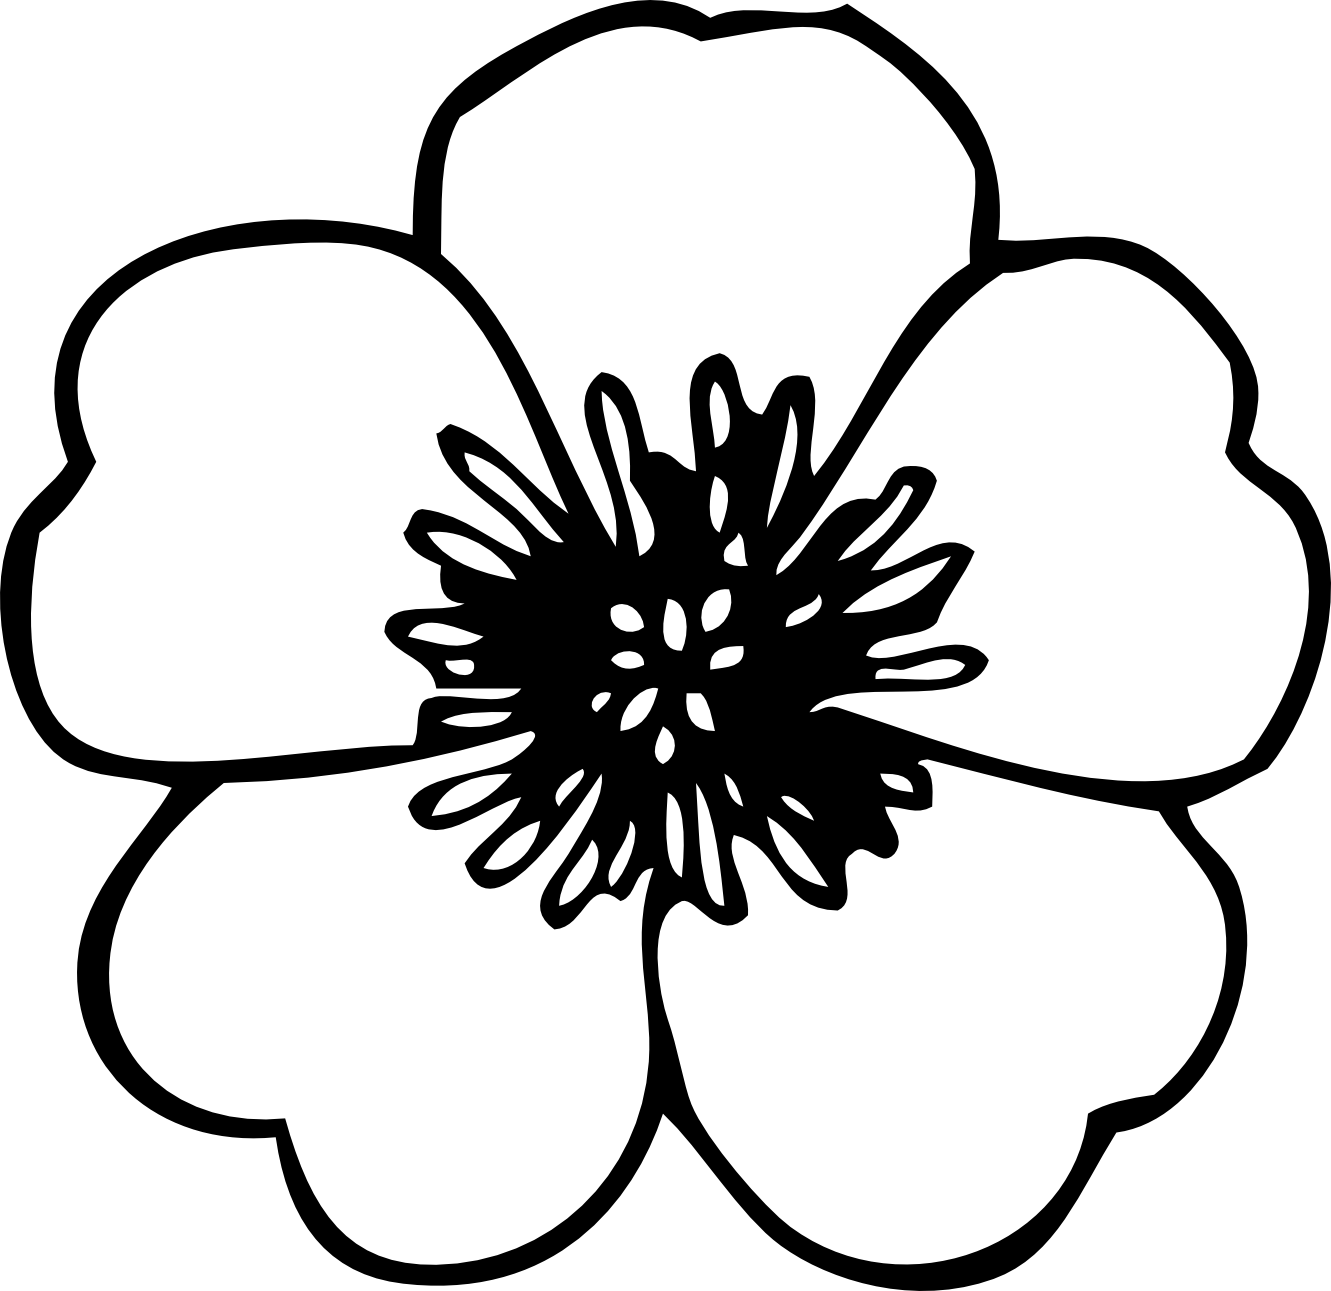 Clipart Spring Flowers Black And White Panda Free Free Image